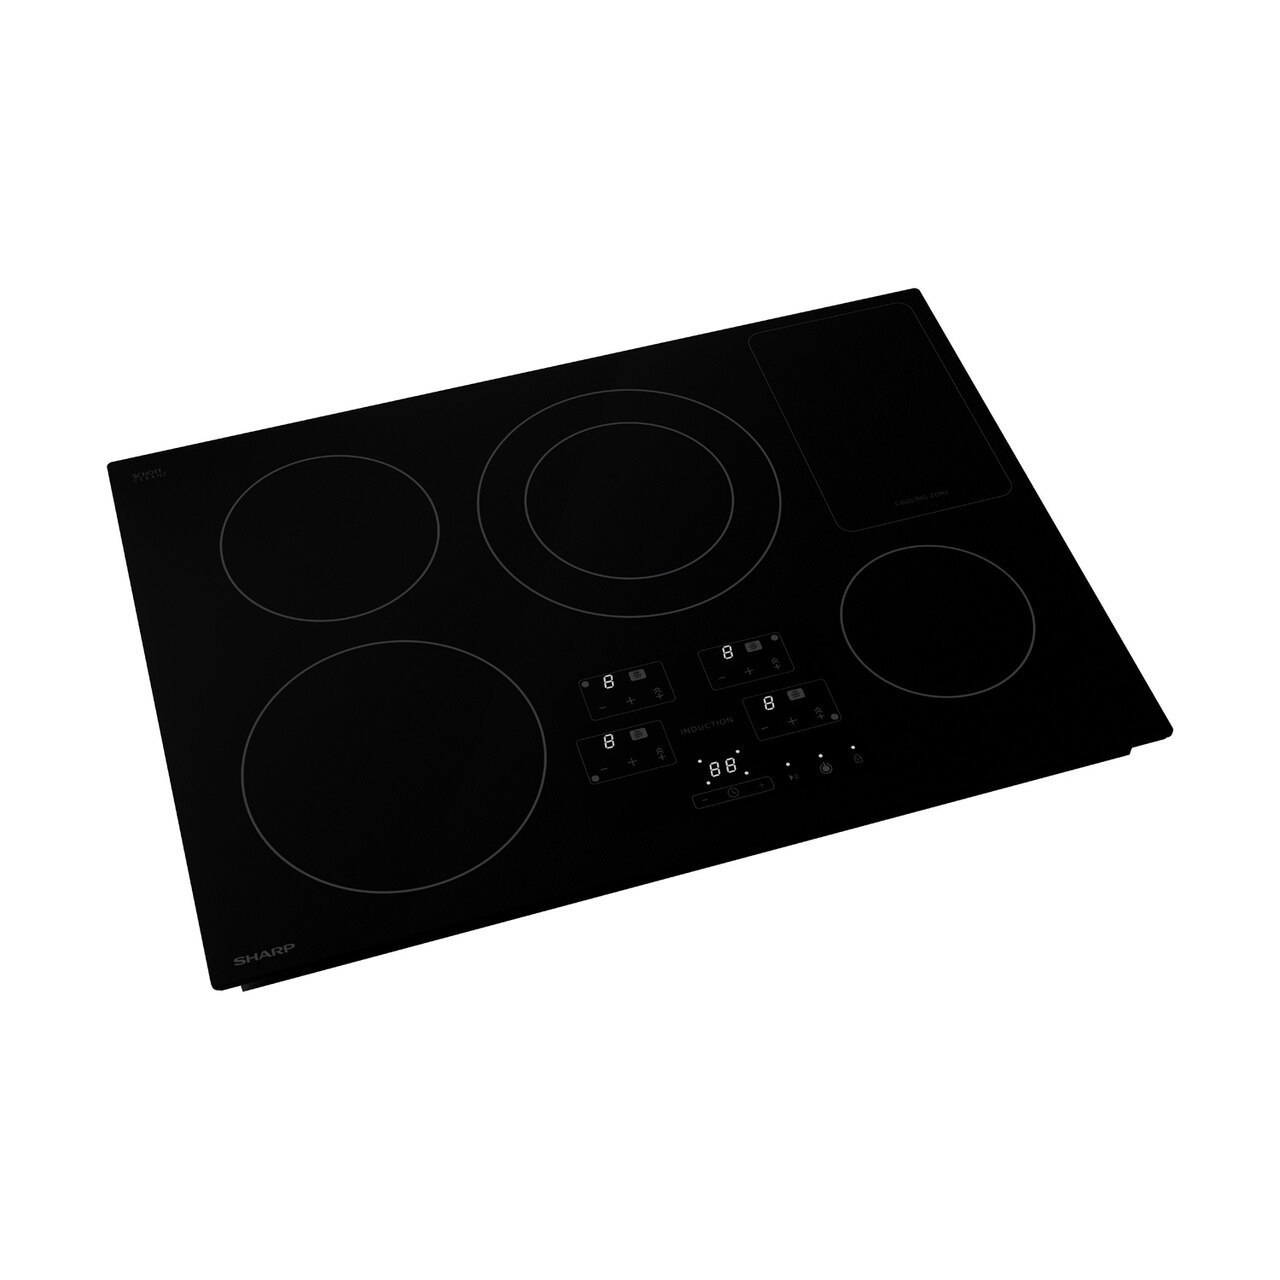 30 in. Width Induction Cooktop, European Black Mirror Finish Made with Premium SCHOTT® Glass Photo #2